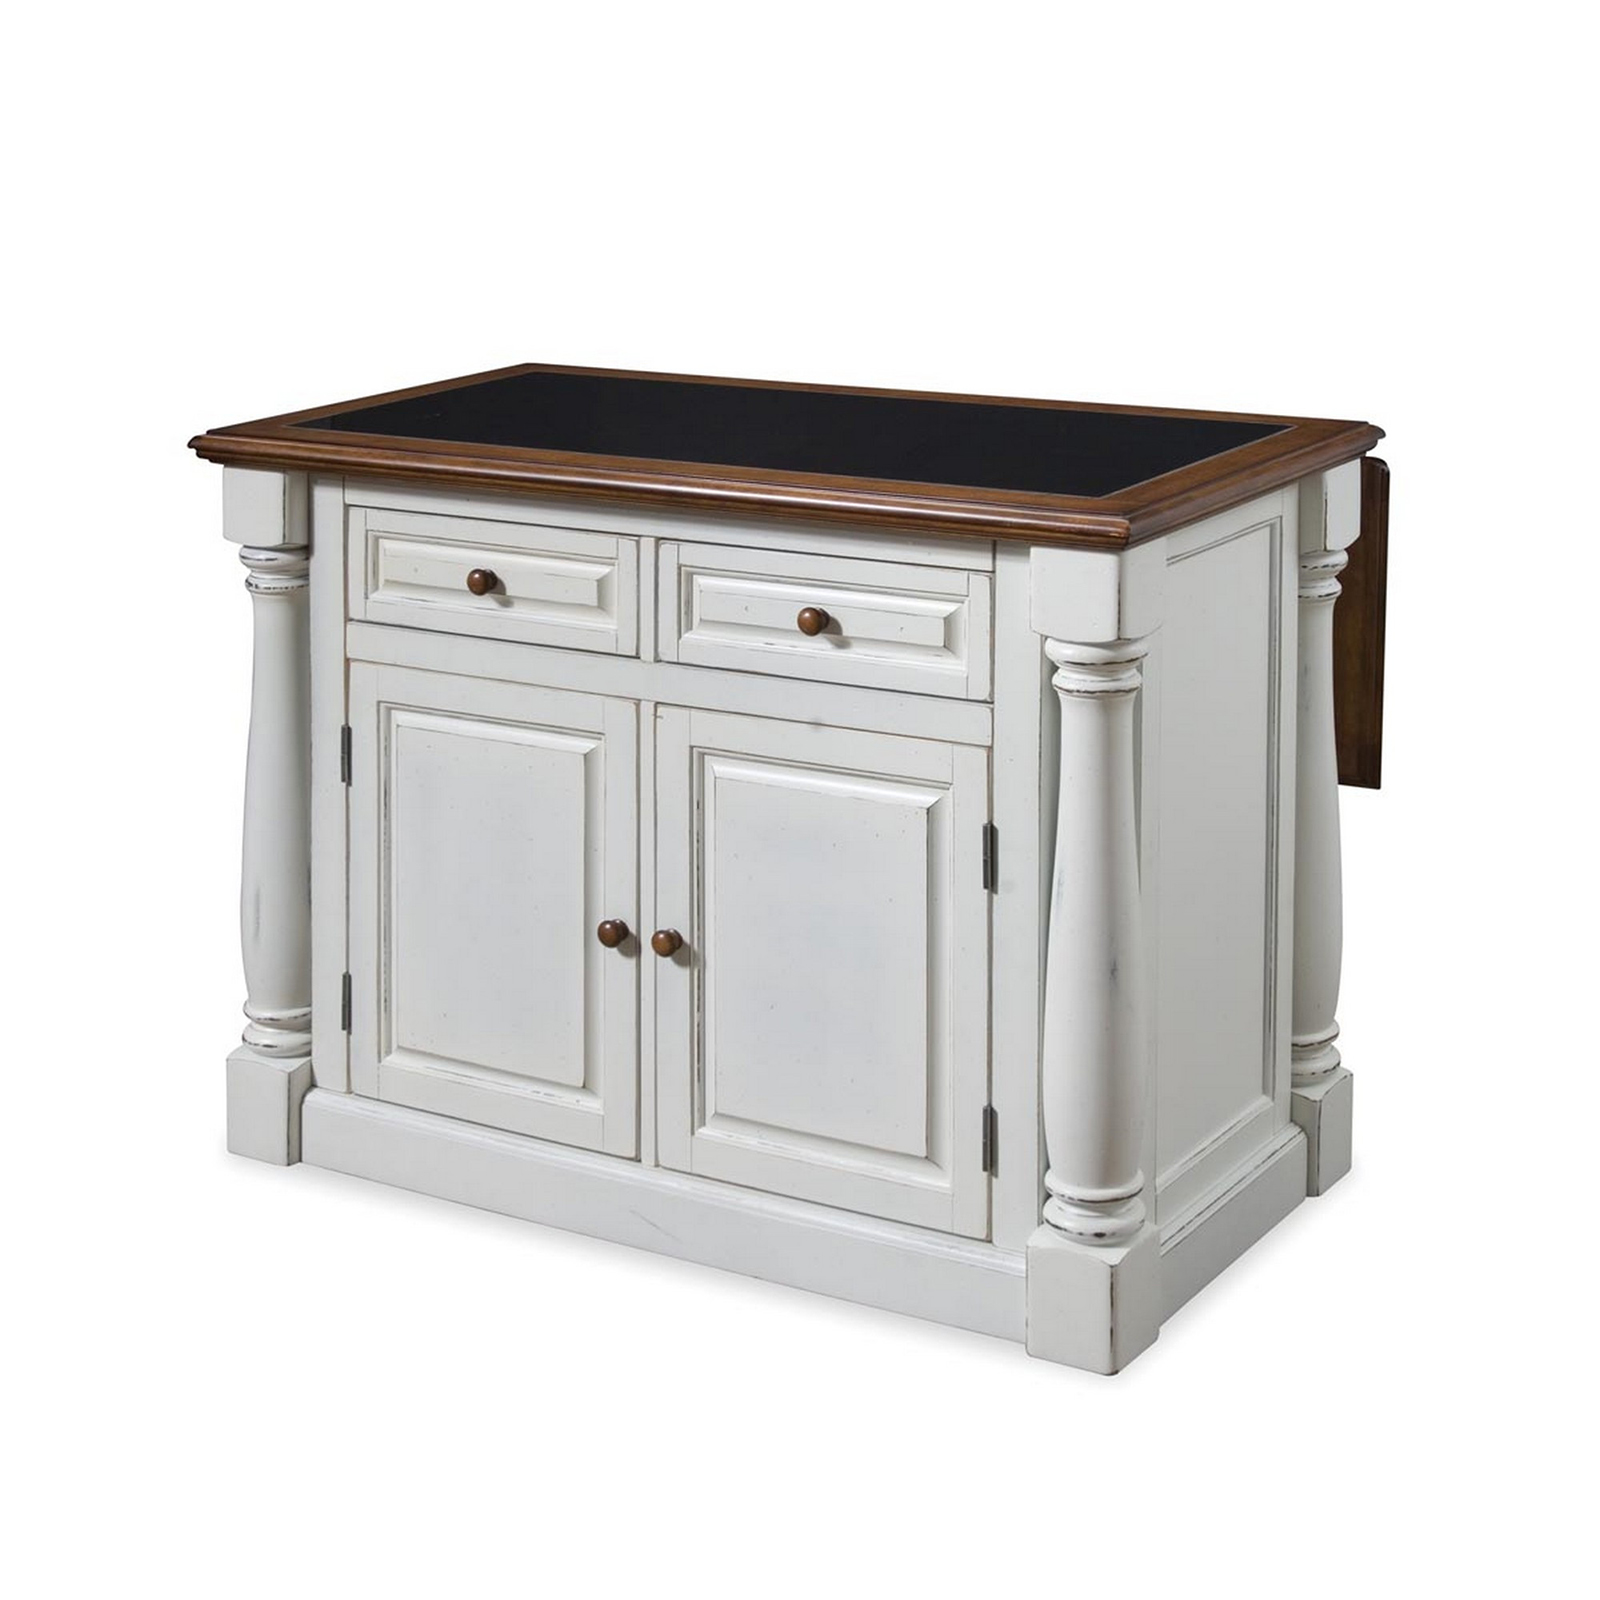 Home Styles Monarch Slide Out Leg Kitchen Island With Granite Top |  Hayneedle